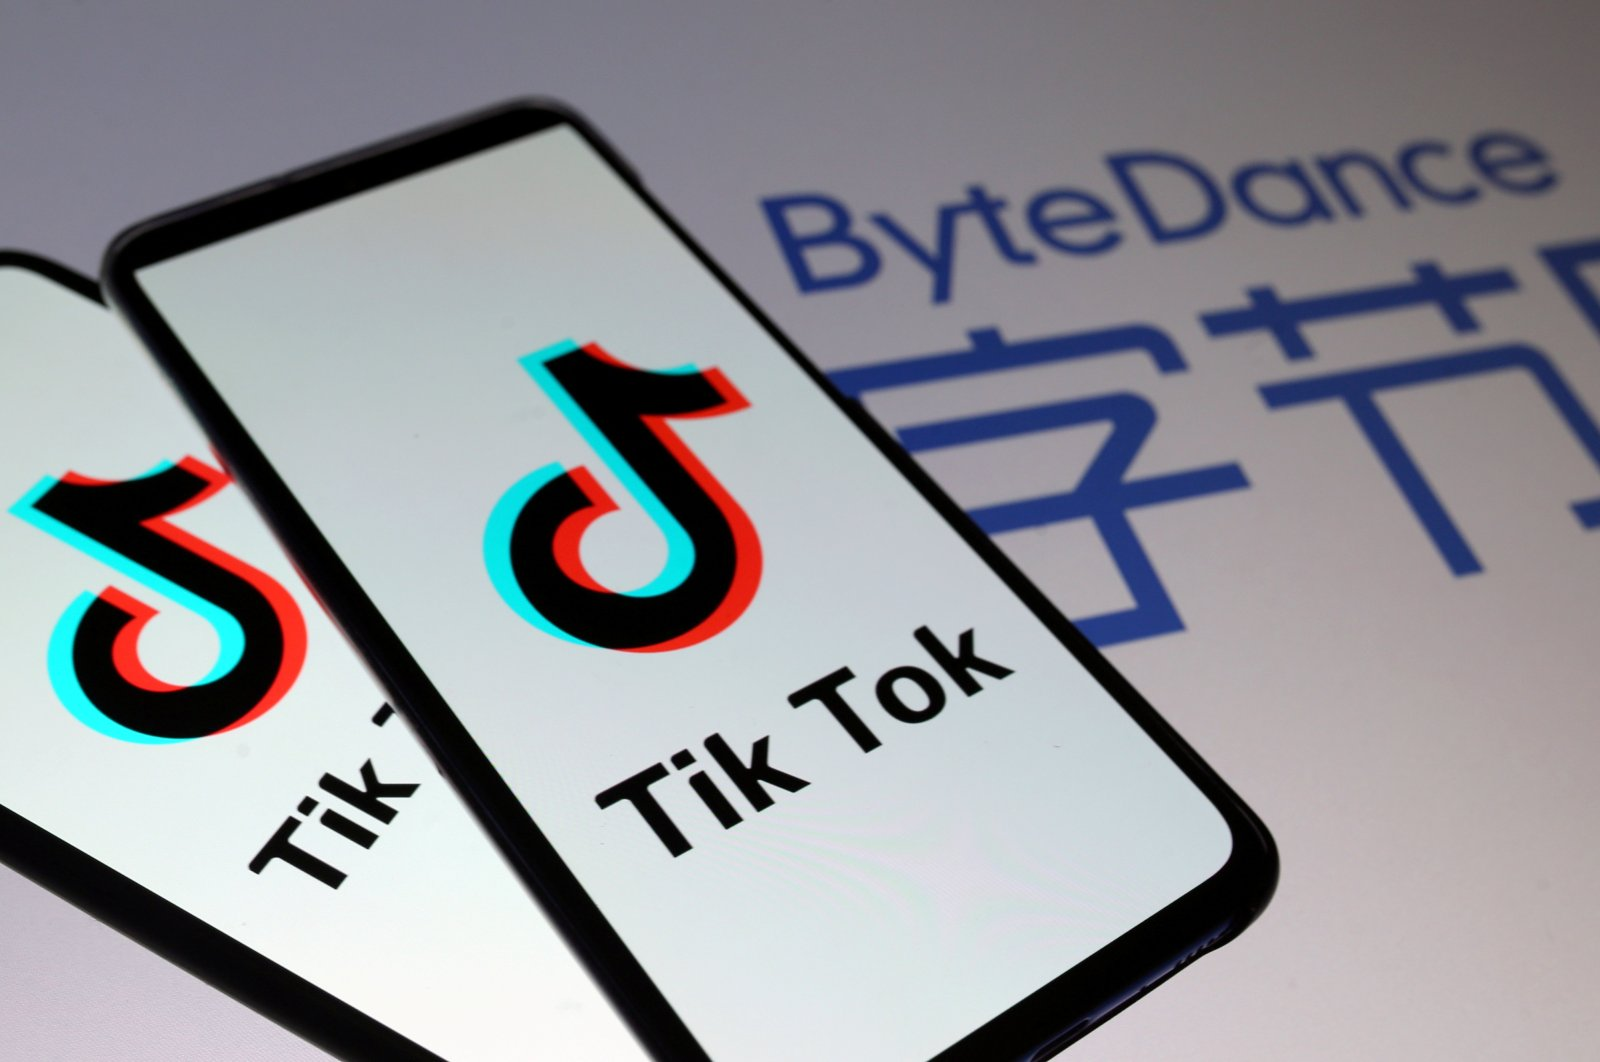 TikTok logos are seen on smartphones in front of a displayed ByteDance logo in this illustration taken November 27, 2019. (REUTERS Photo)